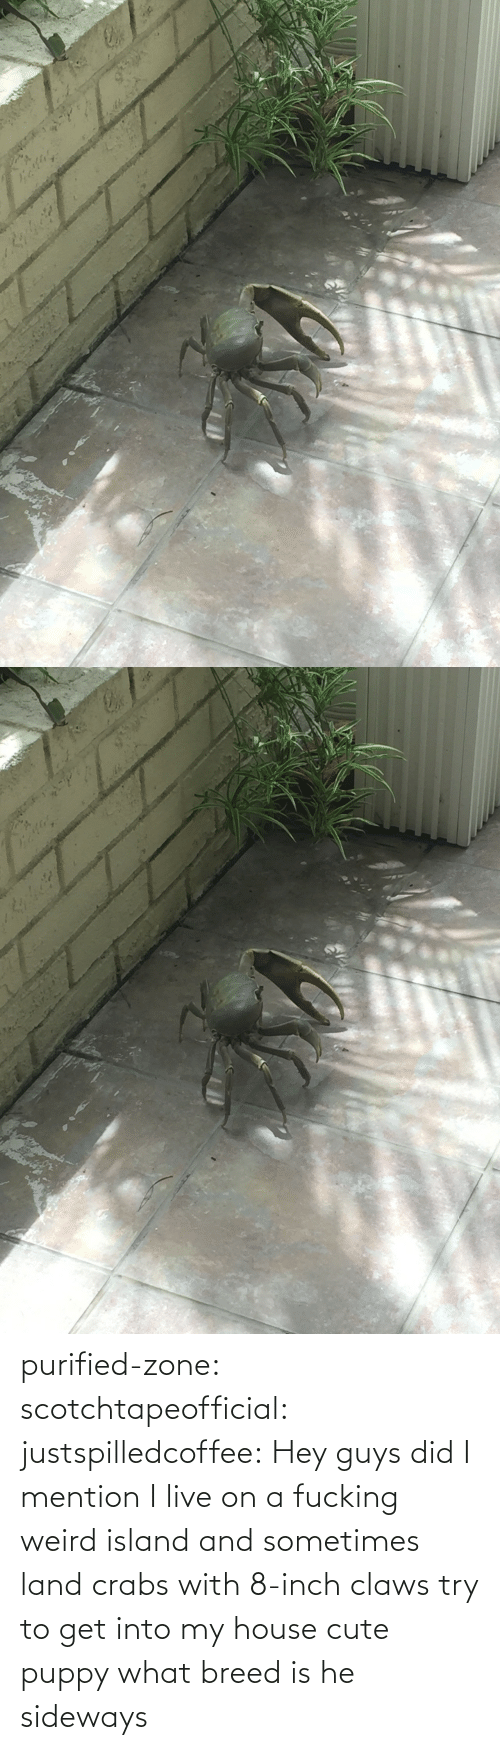 A Fucking: purified-zone: scotchtapeofficial:  justspilledcoffee:  Hey guys did I mention I live on a fucking weird island and sometimes land crabs with 8-inch claws try to get into my house  cute puppy what breed is he  sideways